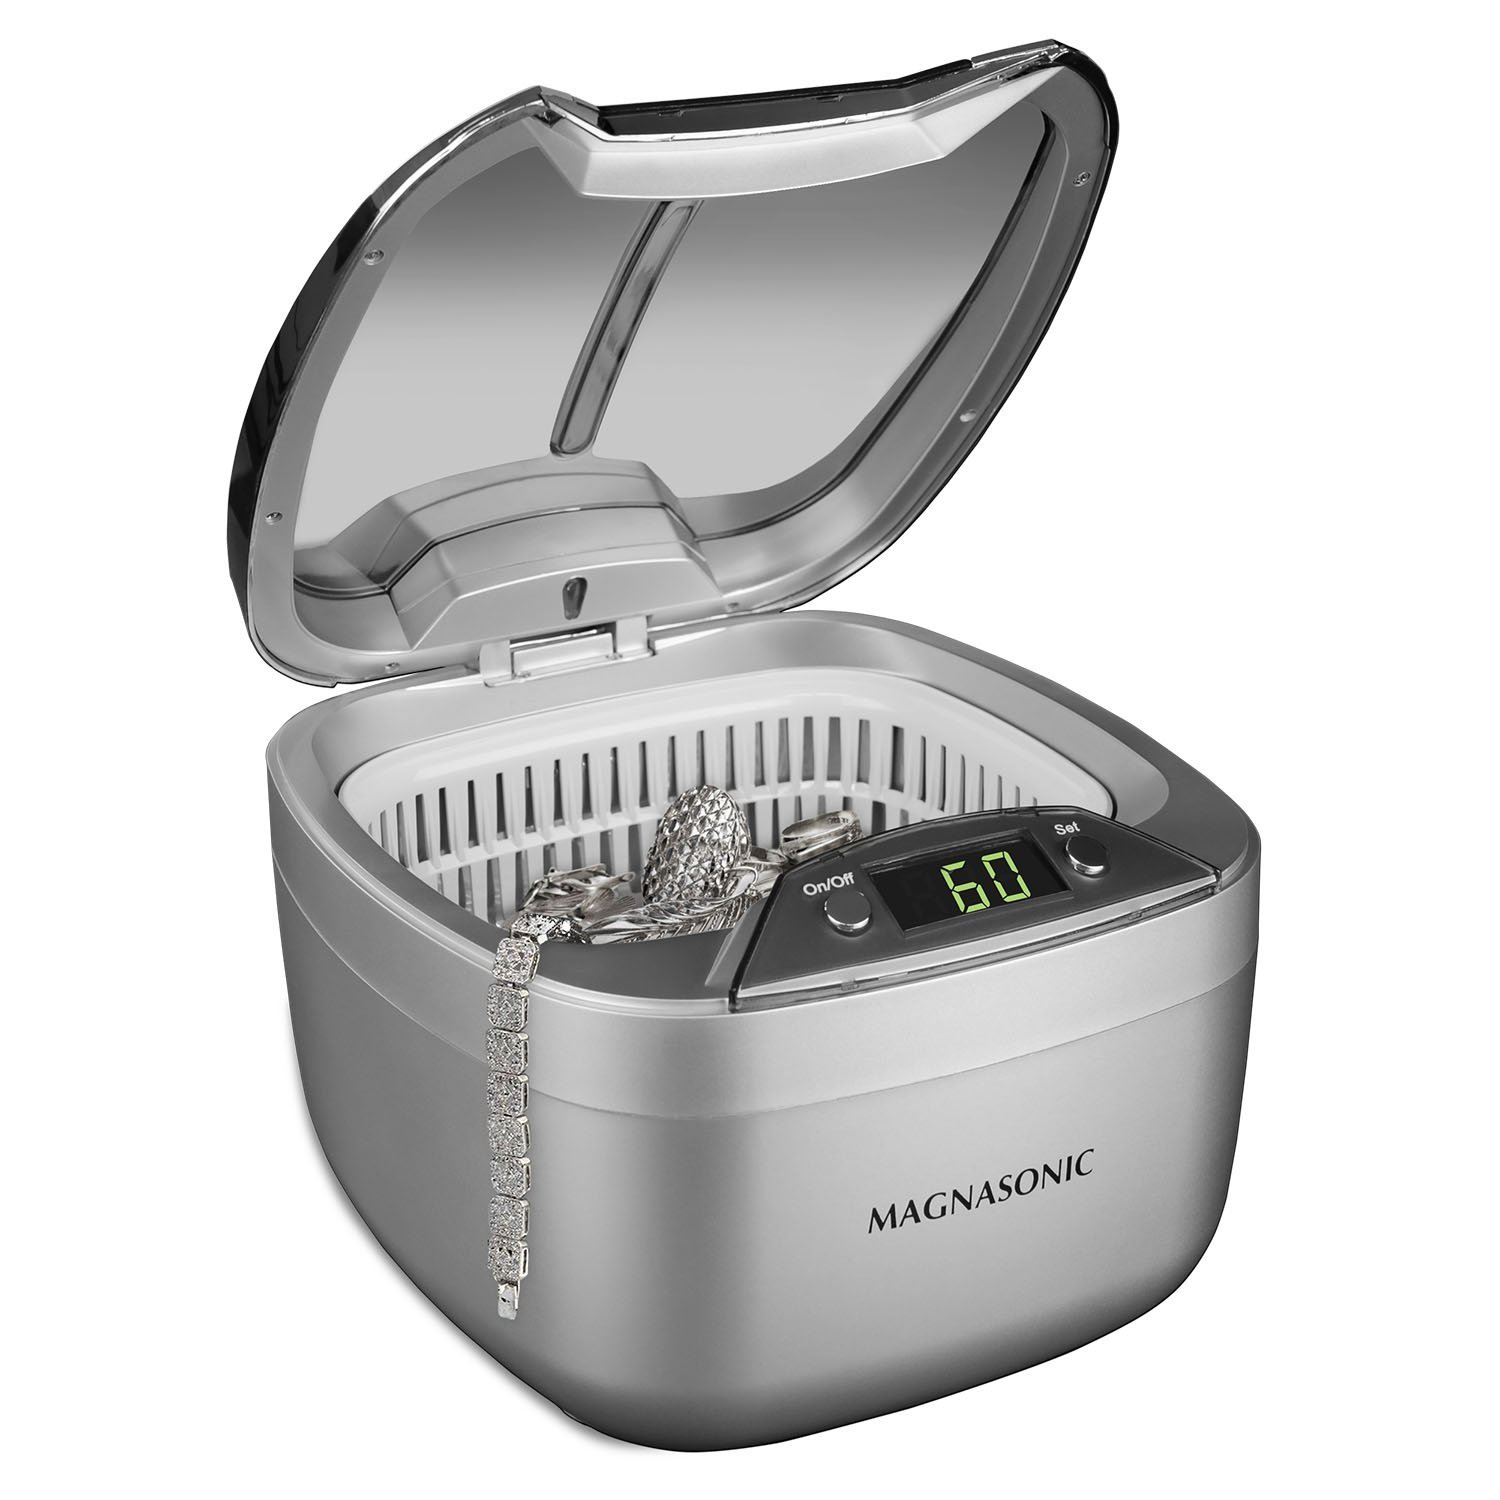 Magnasonic Professional Ultrasonic Jewelry Cleaner, Dual-Wave Heavy Duty